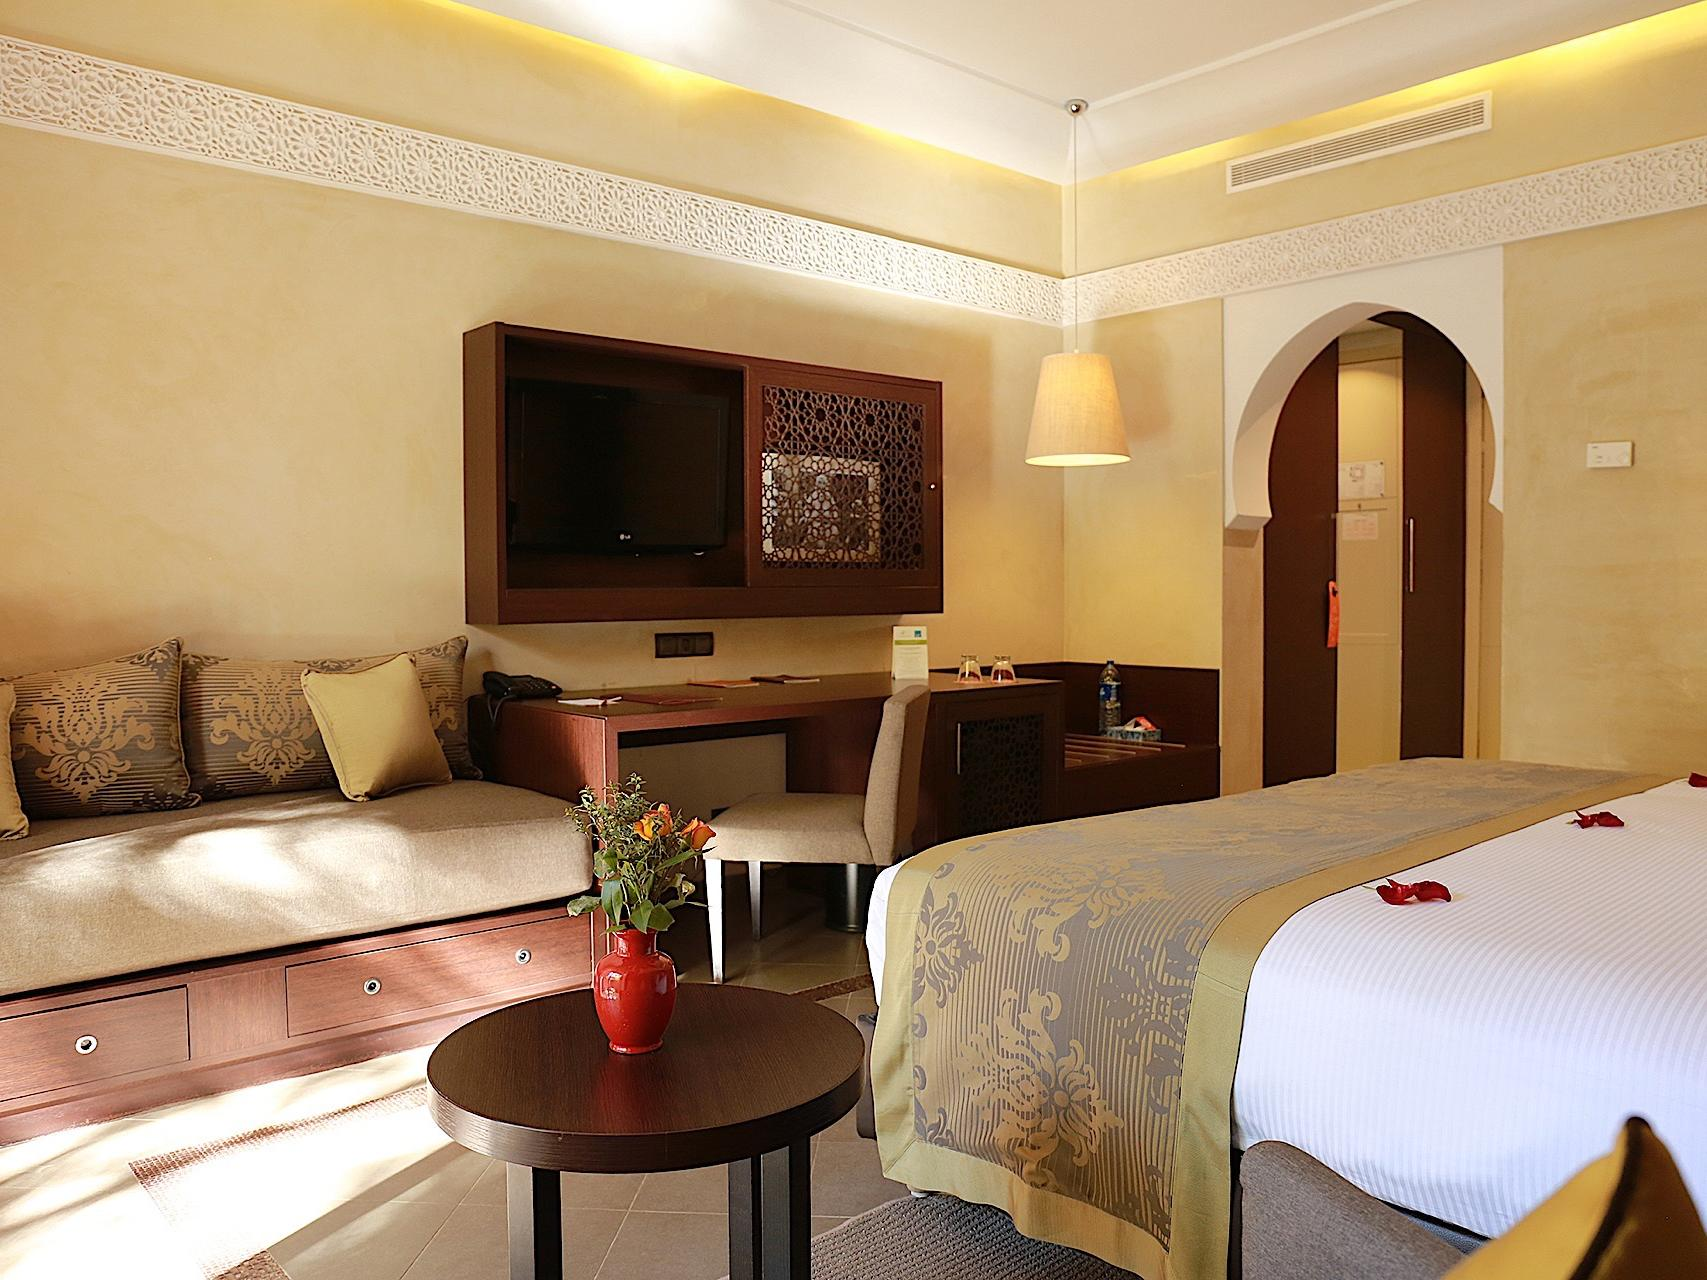 Deluxe Double Room at Kenzi Club Agdal Medina Hotel in Marrakesh, Morocco